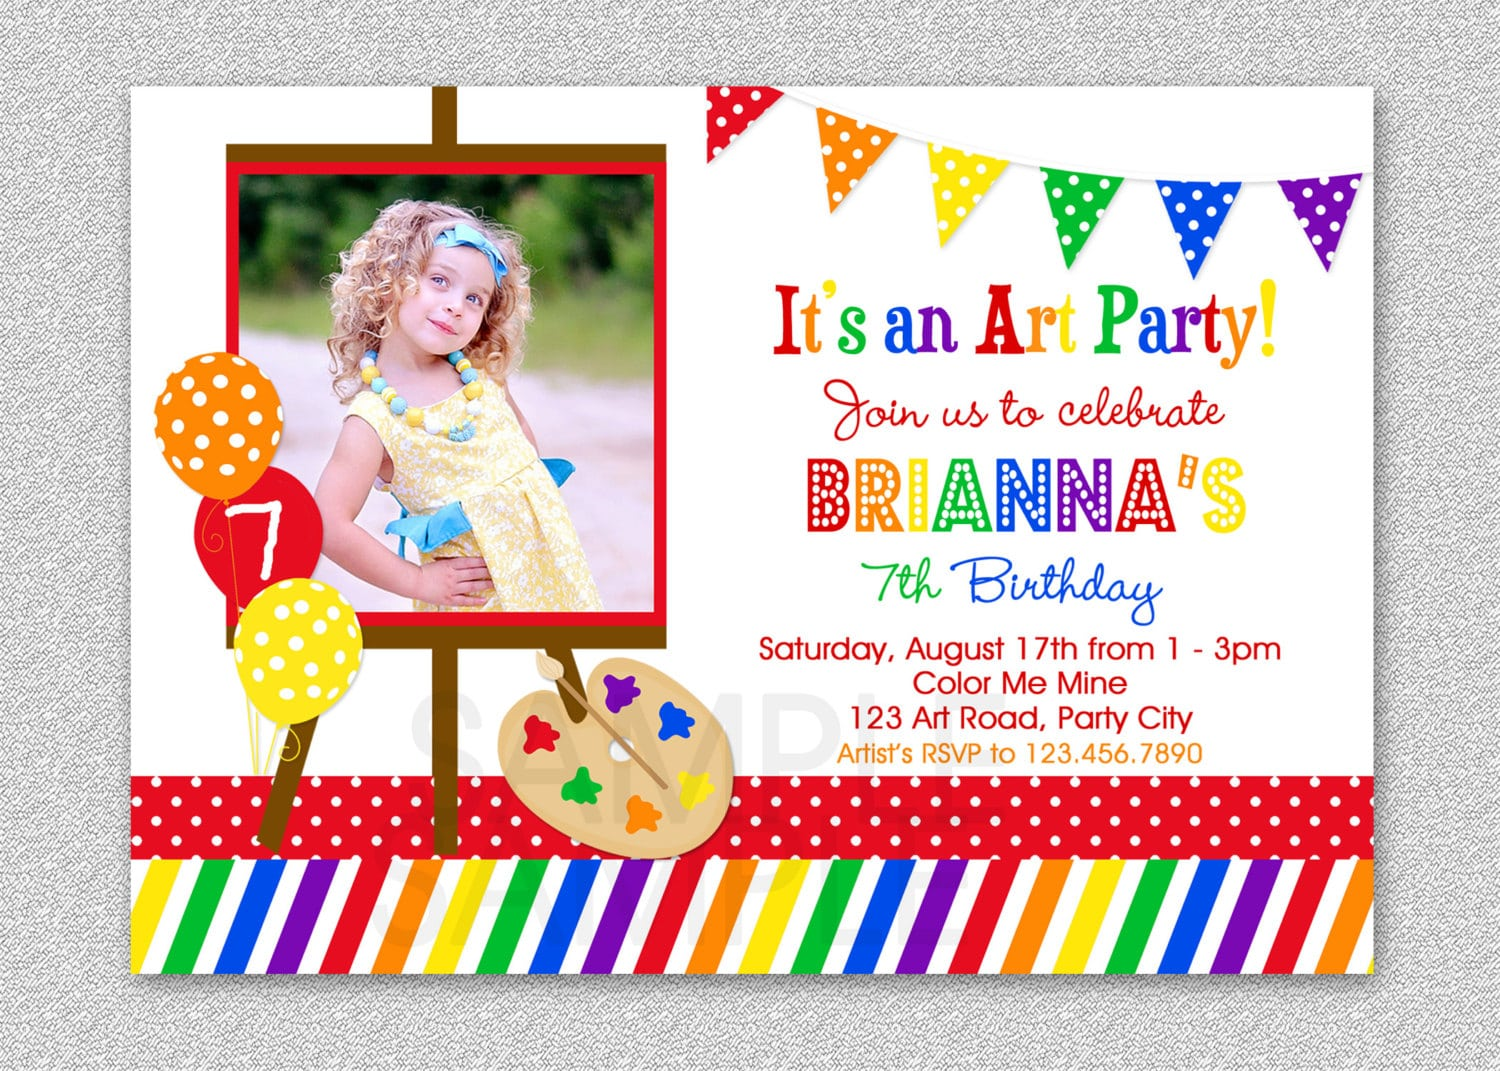 Get Art Birthday Party Invitations For Your Kids Download This